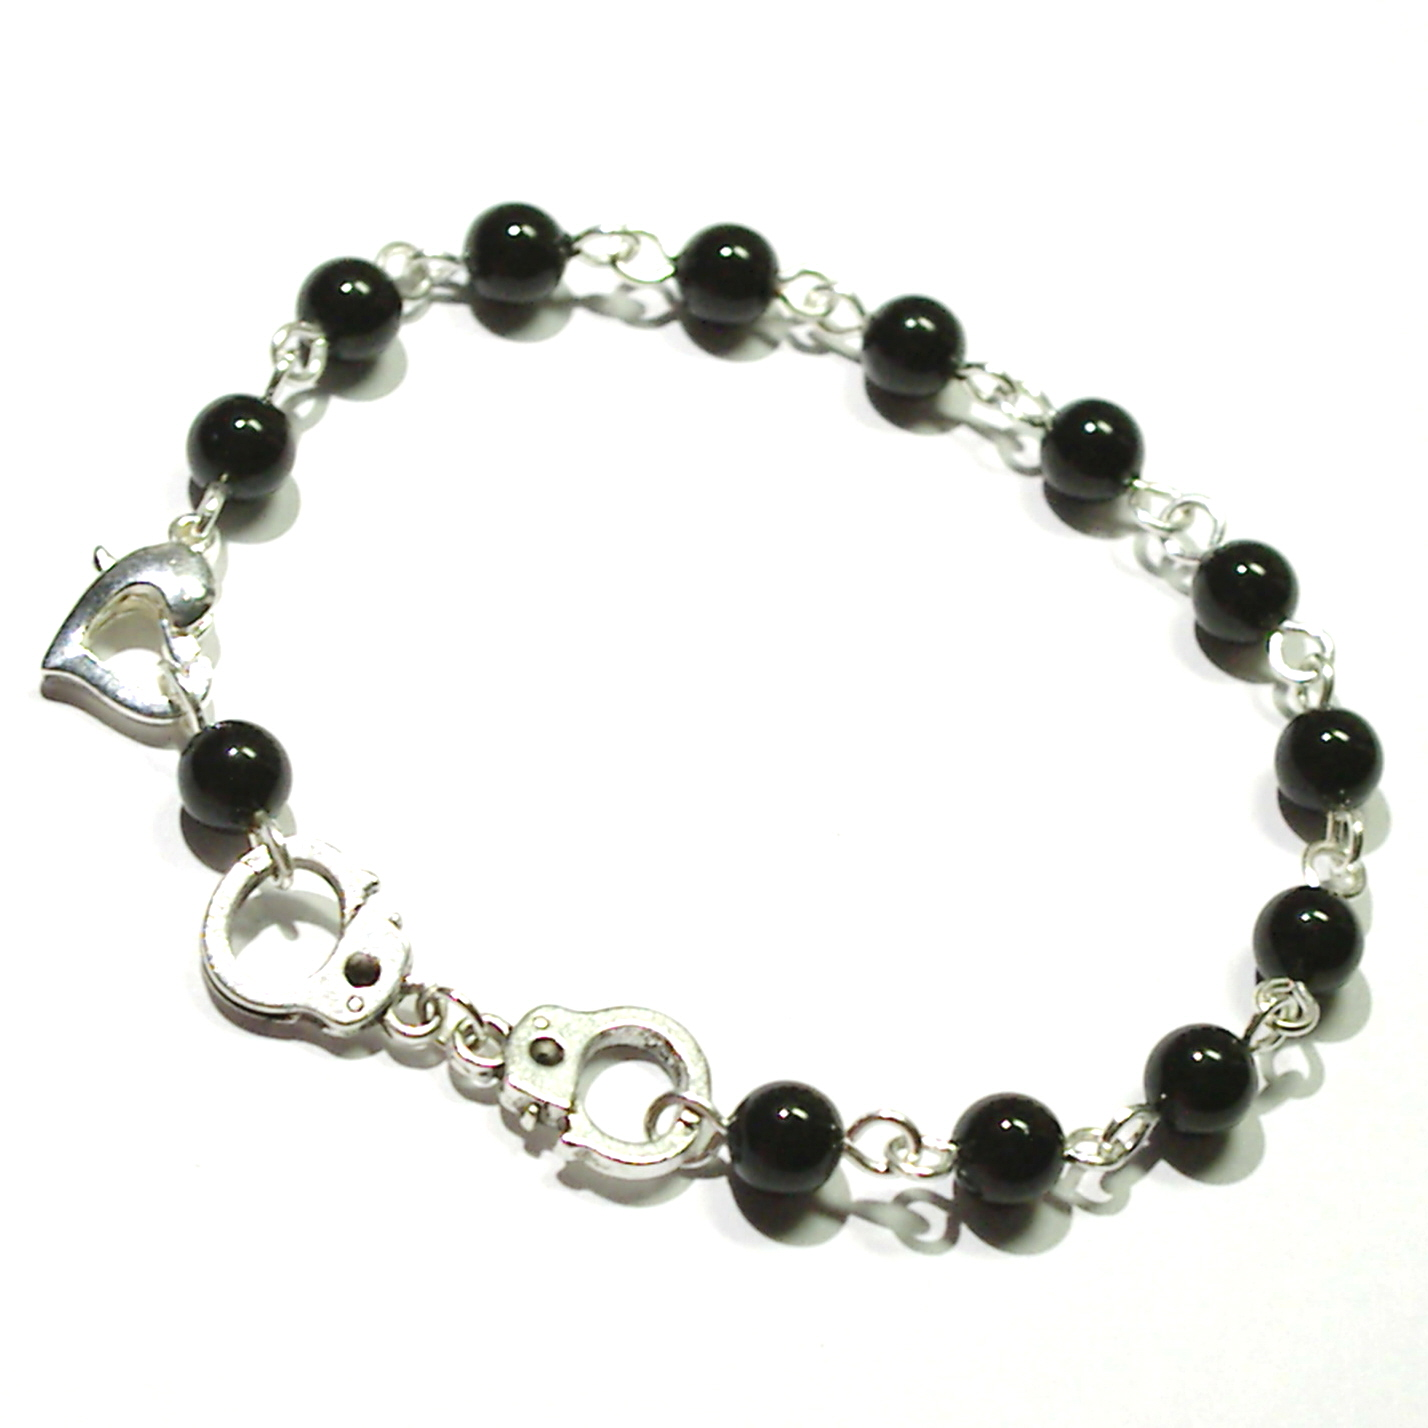 black_pearl_handcuff_bracelet_bracelets_and_wristbands_2.jpg